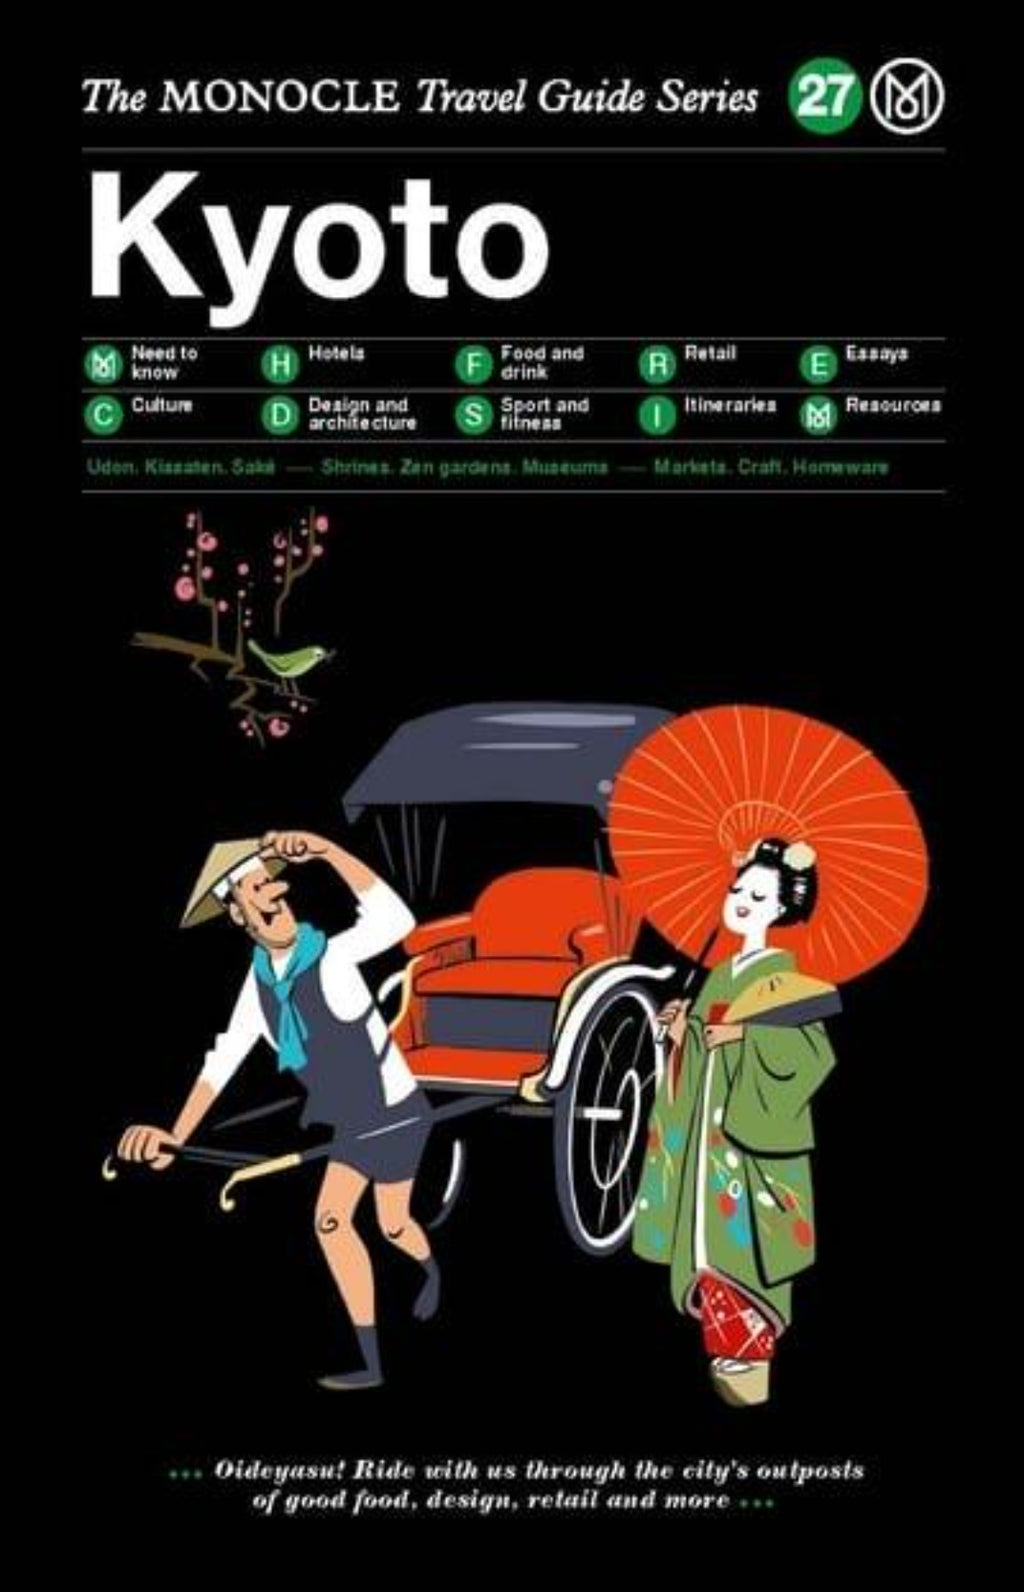 Kyoto - The Monocle Travel Guide Series 27